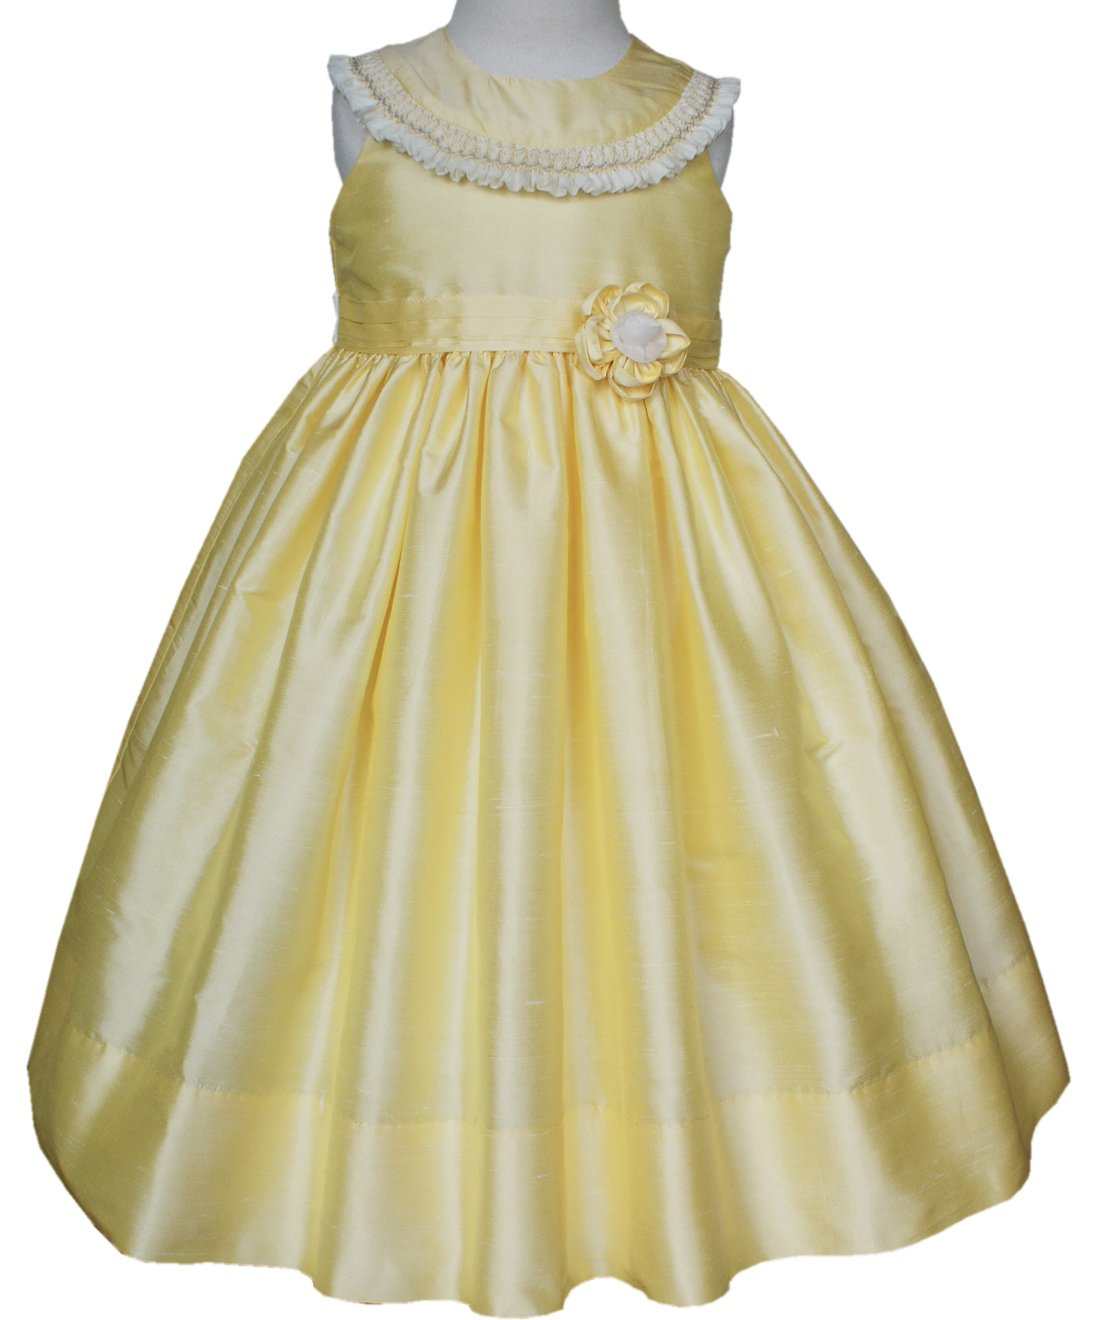 Adorable yellow silk dupioni Princess Belle smocked dress